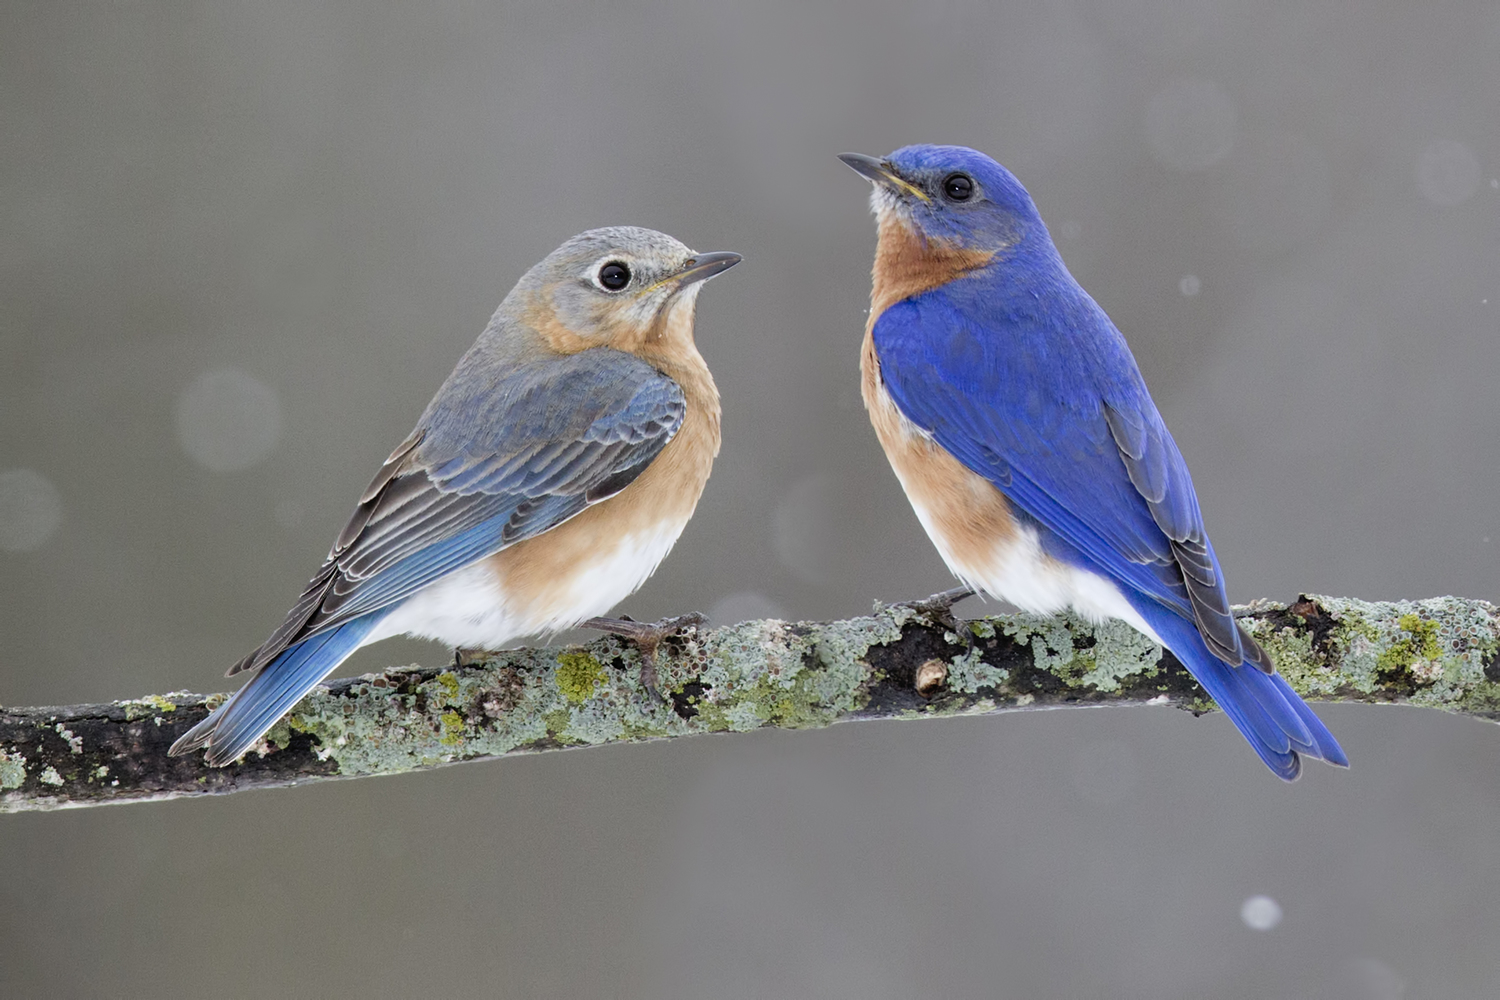 High Resolution Wallpaper | Eastern Bluebird 1500x1000 px